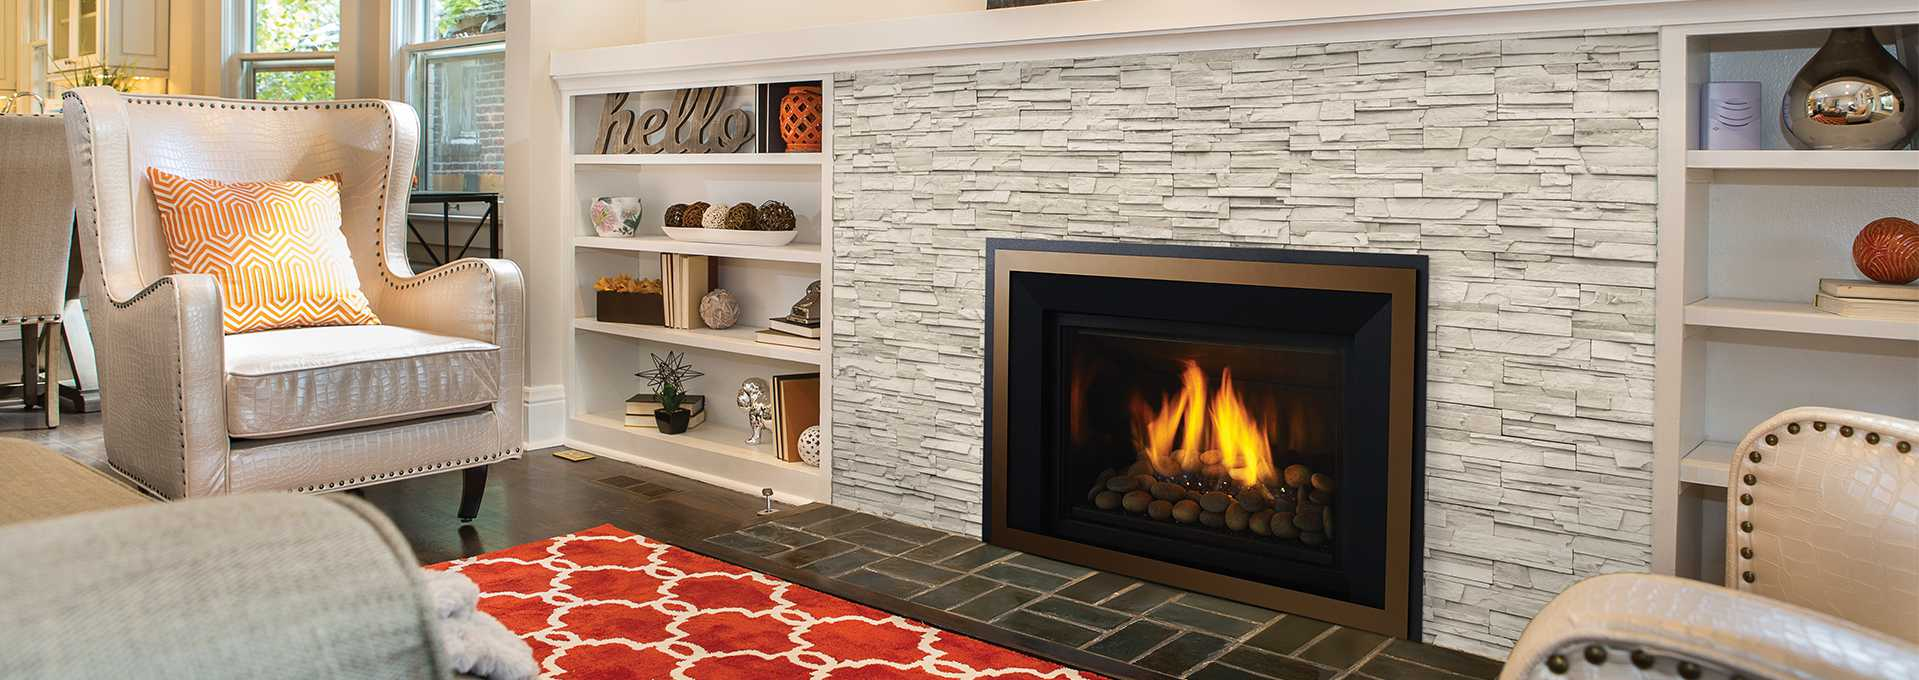 Large Gas Fireplace Insert Regency Horizon Hri6e